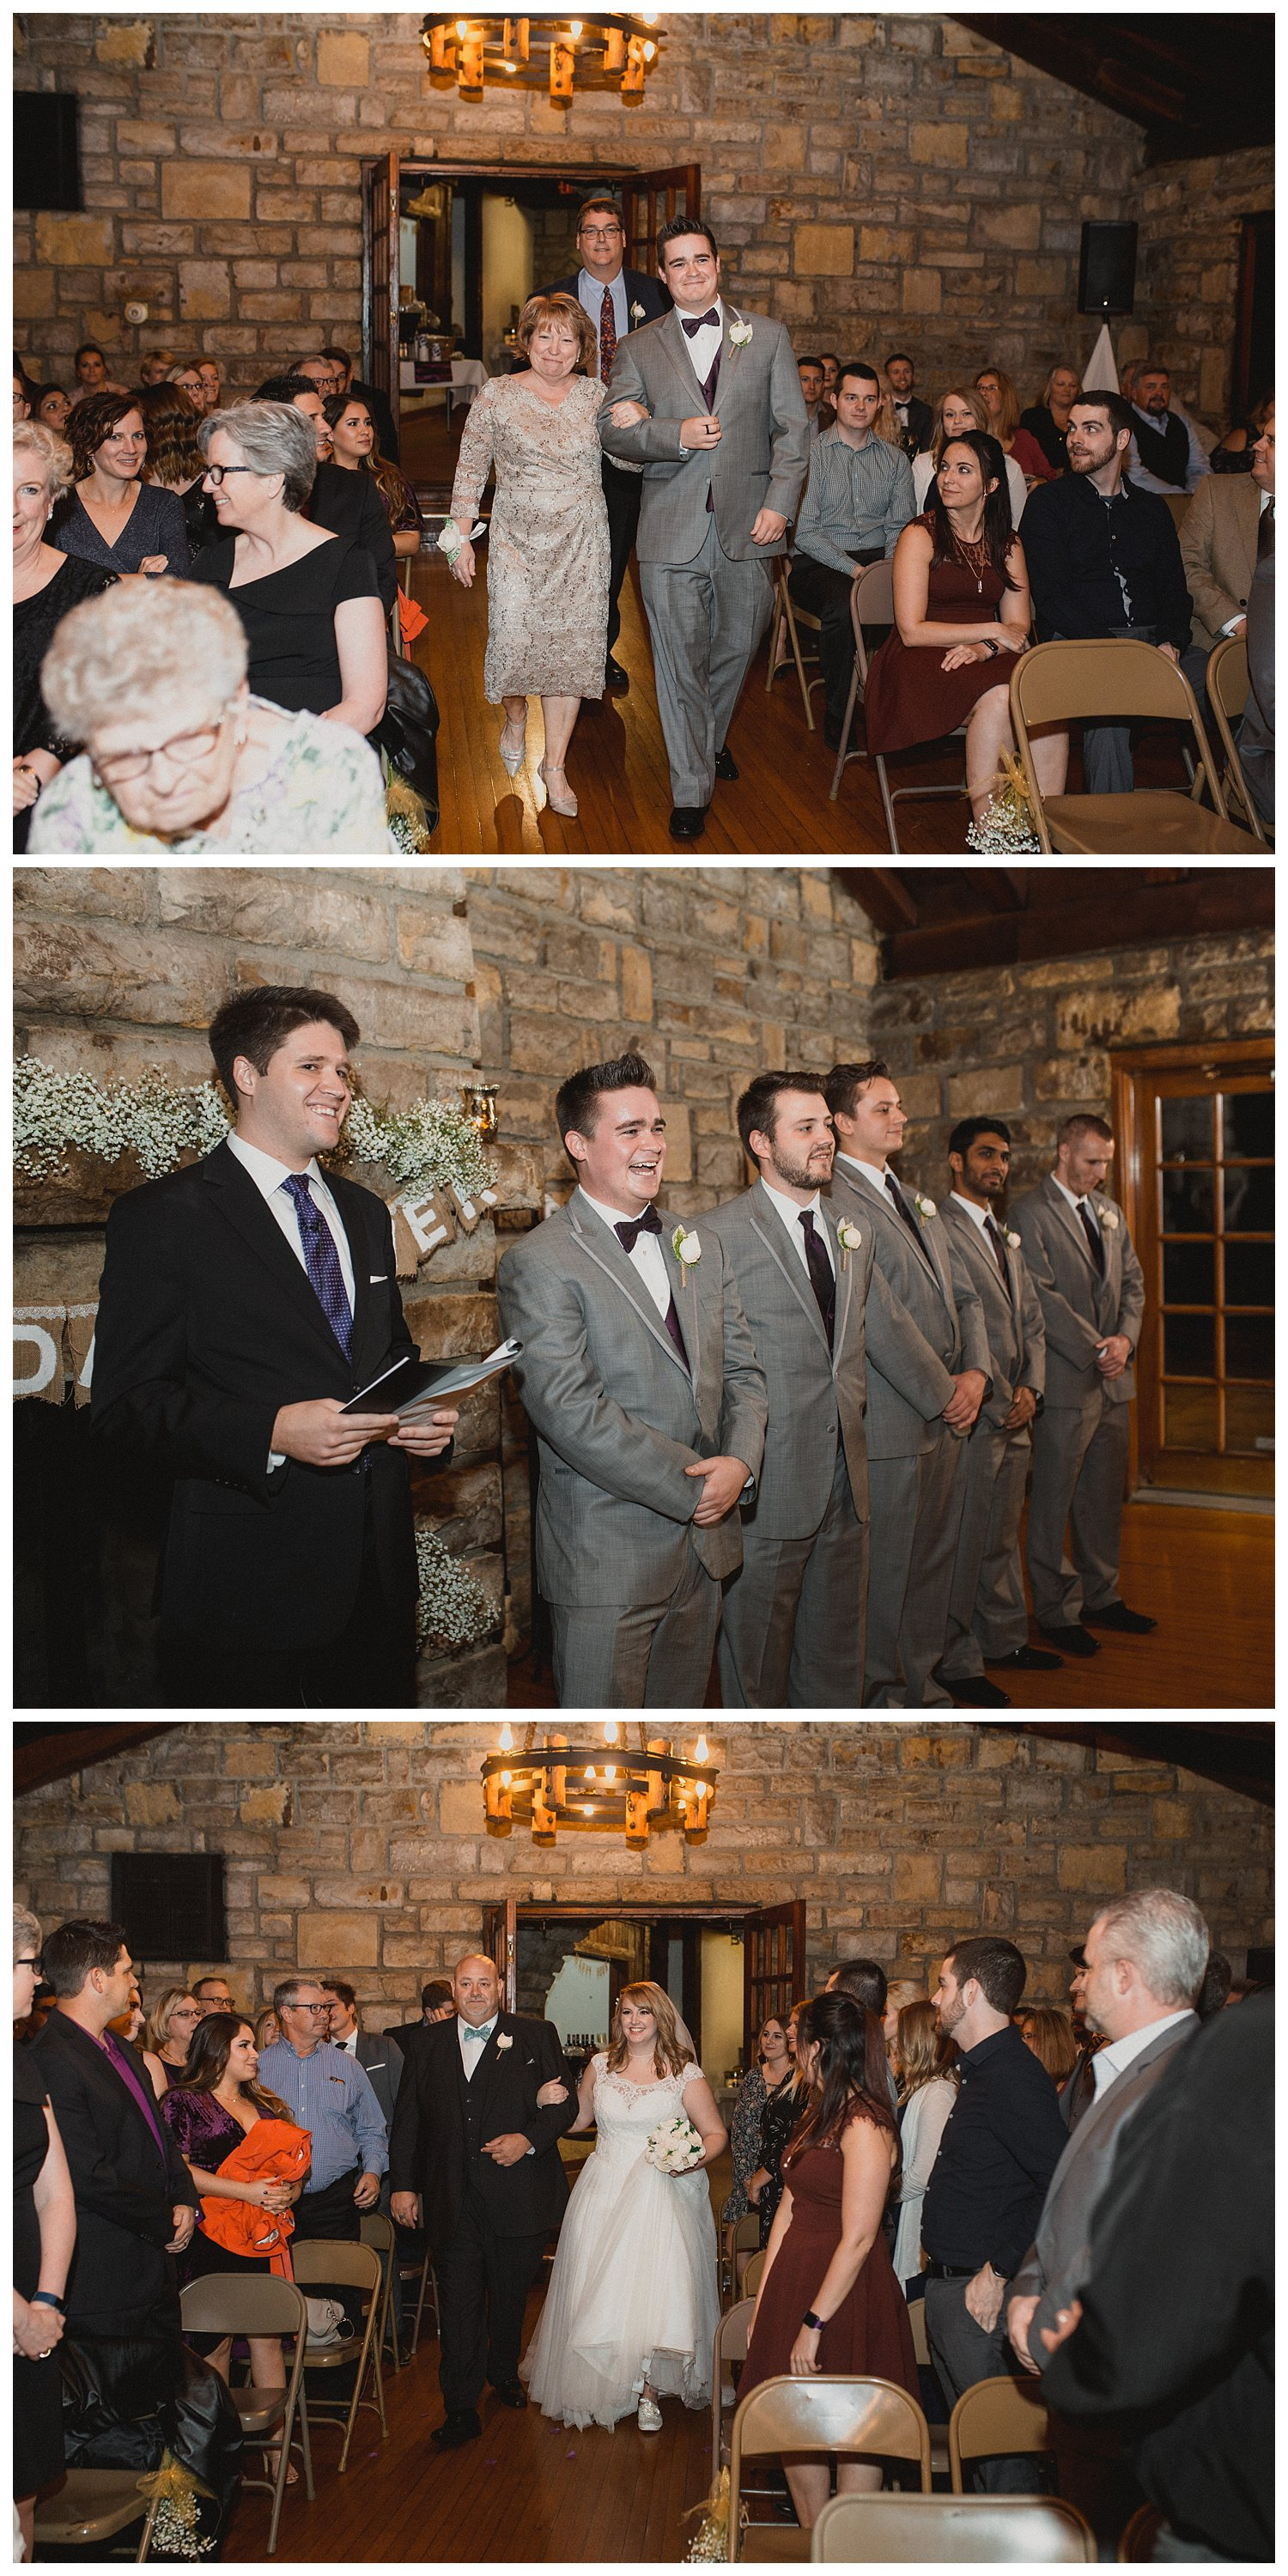 Kelsey_Diane_Photography_Loose_Mansion_Wedding_Photography_Kansas_City_Victor_Lyndsay_0376.jpg